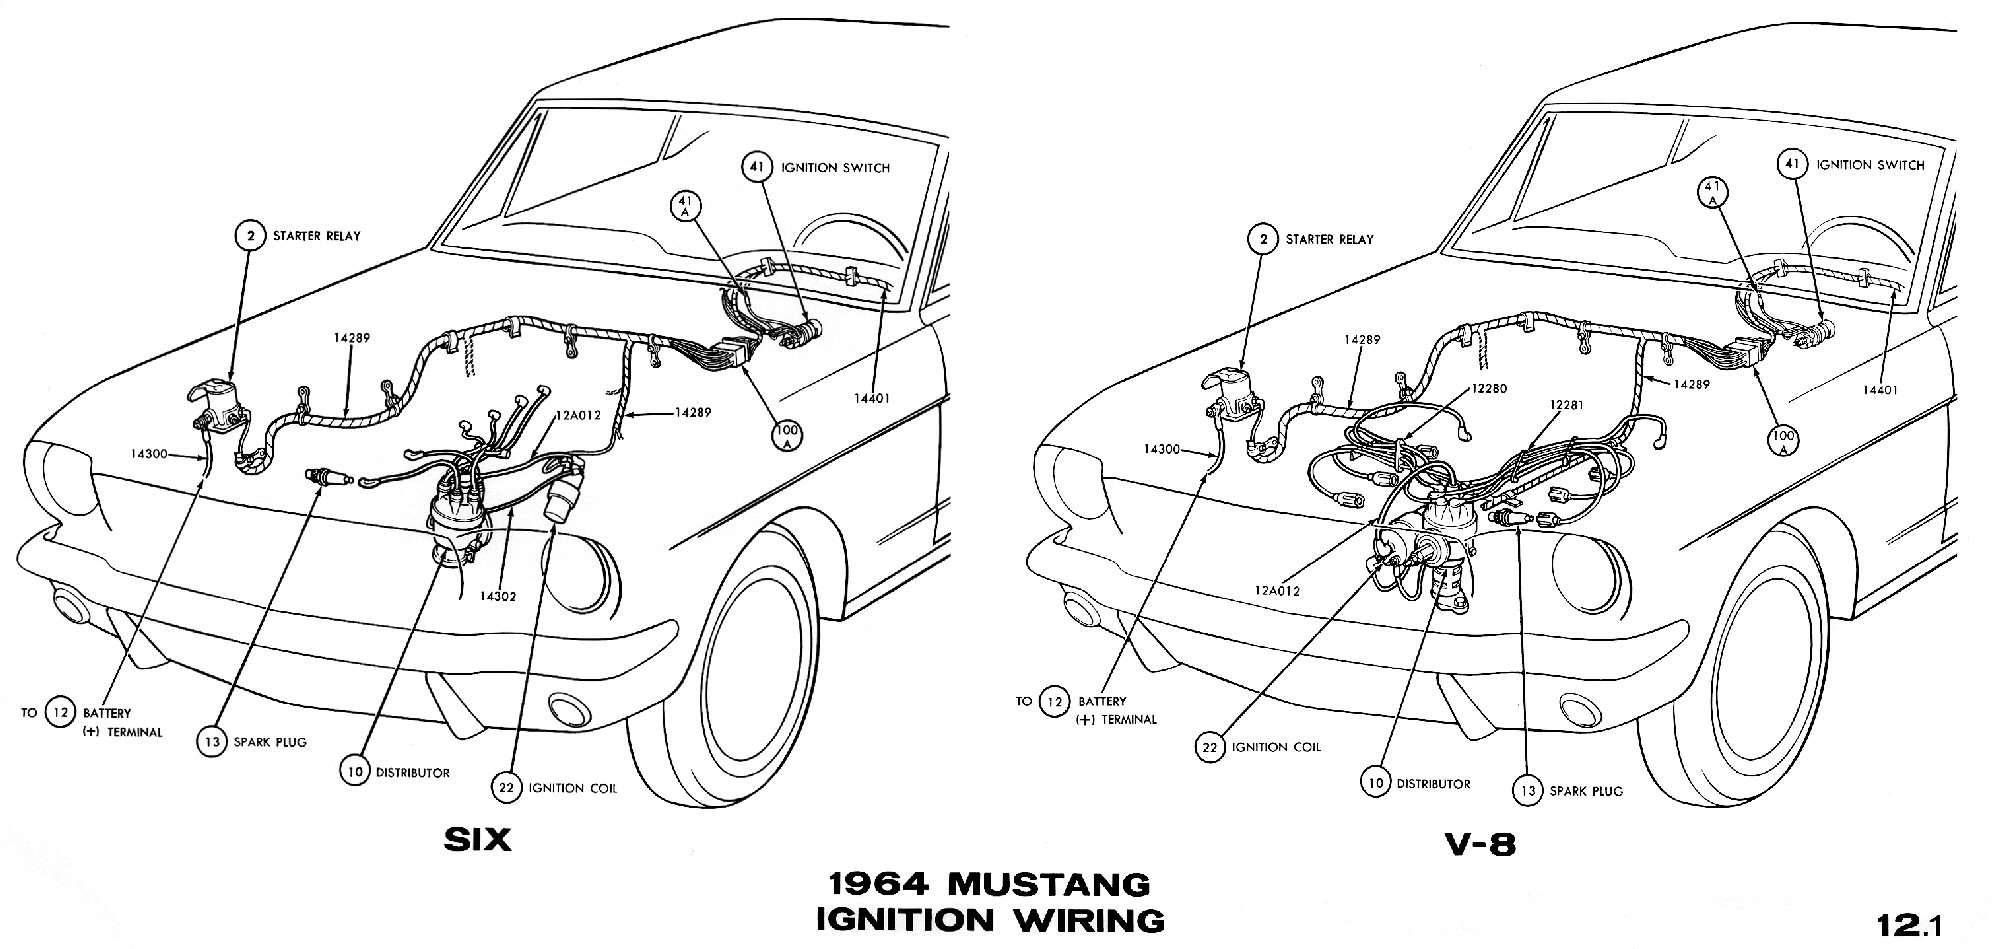 1964 mustang wiring diagrams average joe restoration sm1964c 1964 mustang ignition wiring pictorial